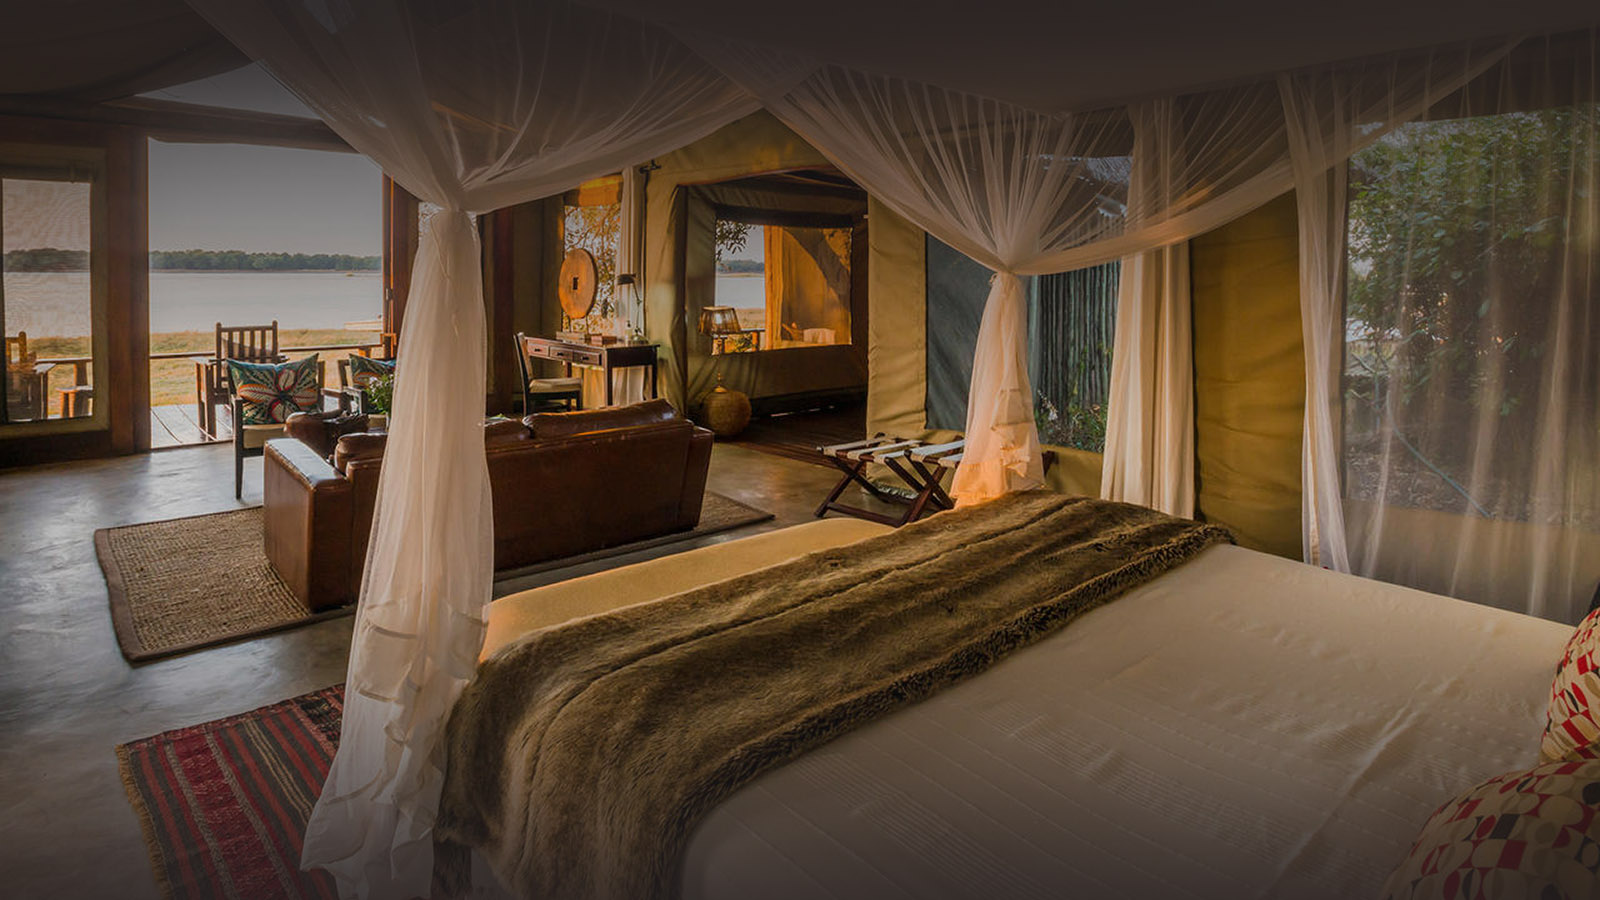 royal zambezi lodge zambia-in-style-safari-packages-lodges-lower-zambezi-national-park-deluxe-suite-bed